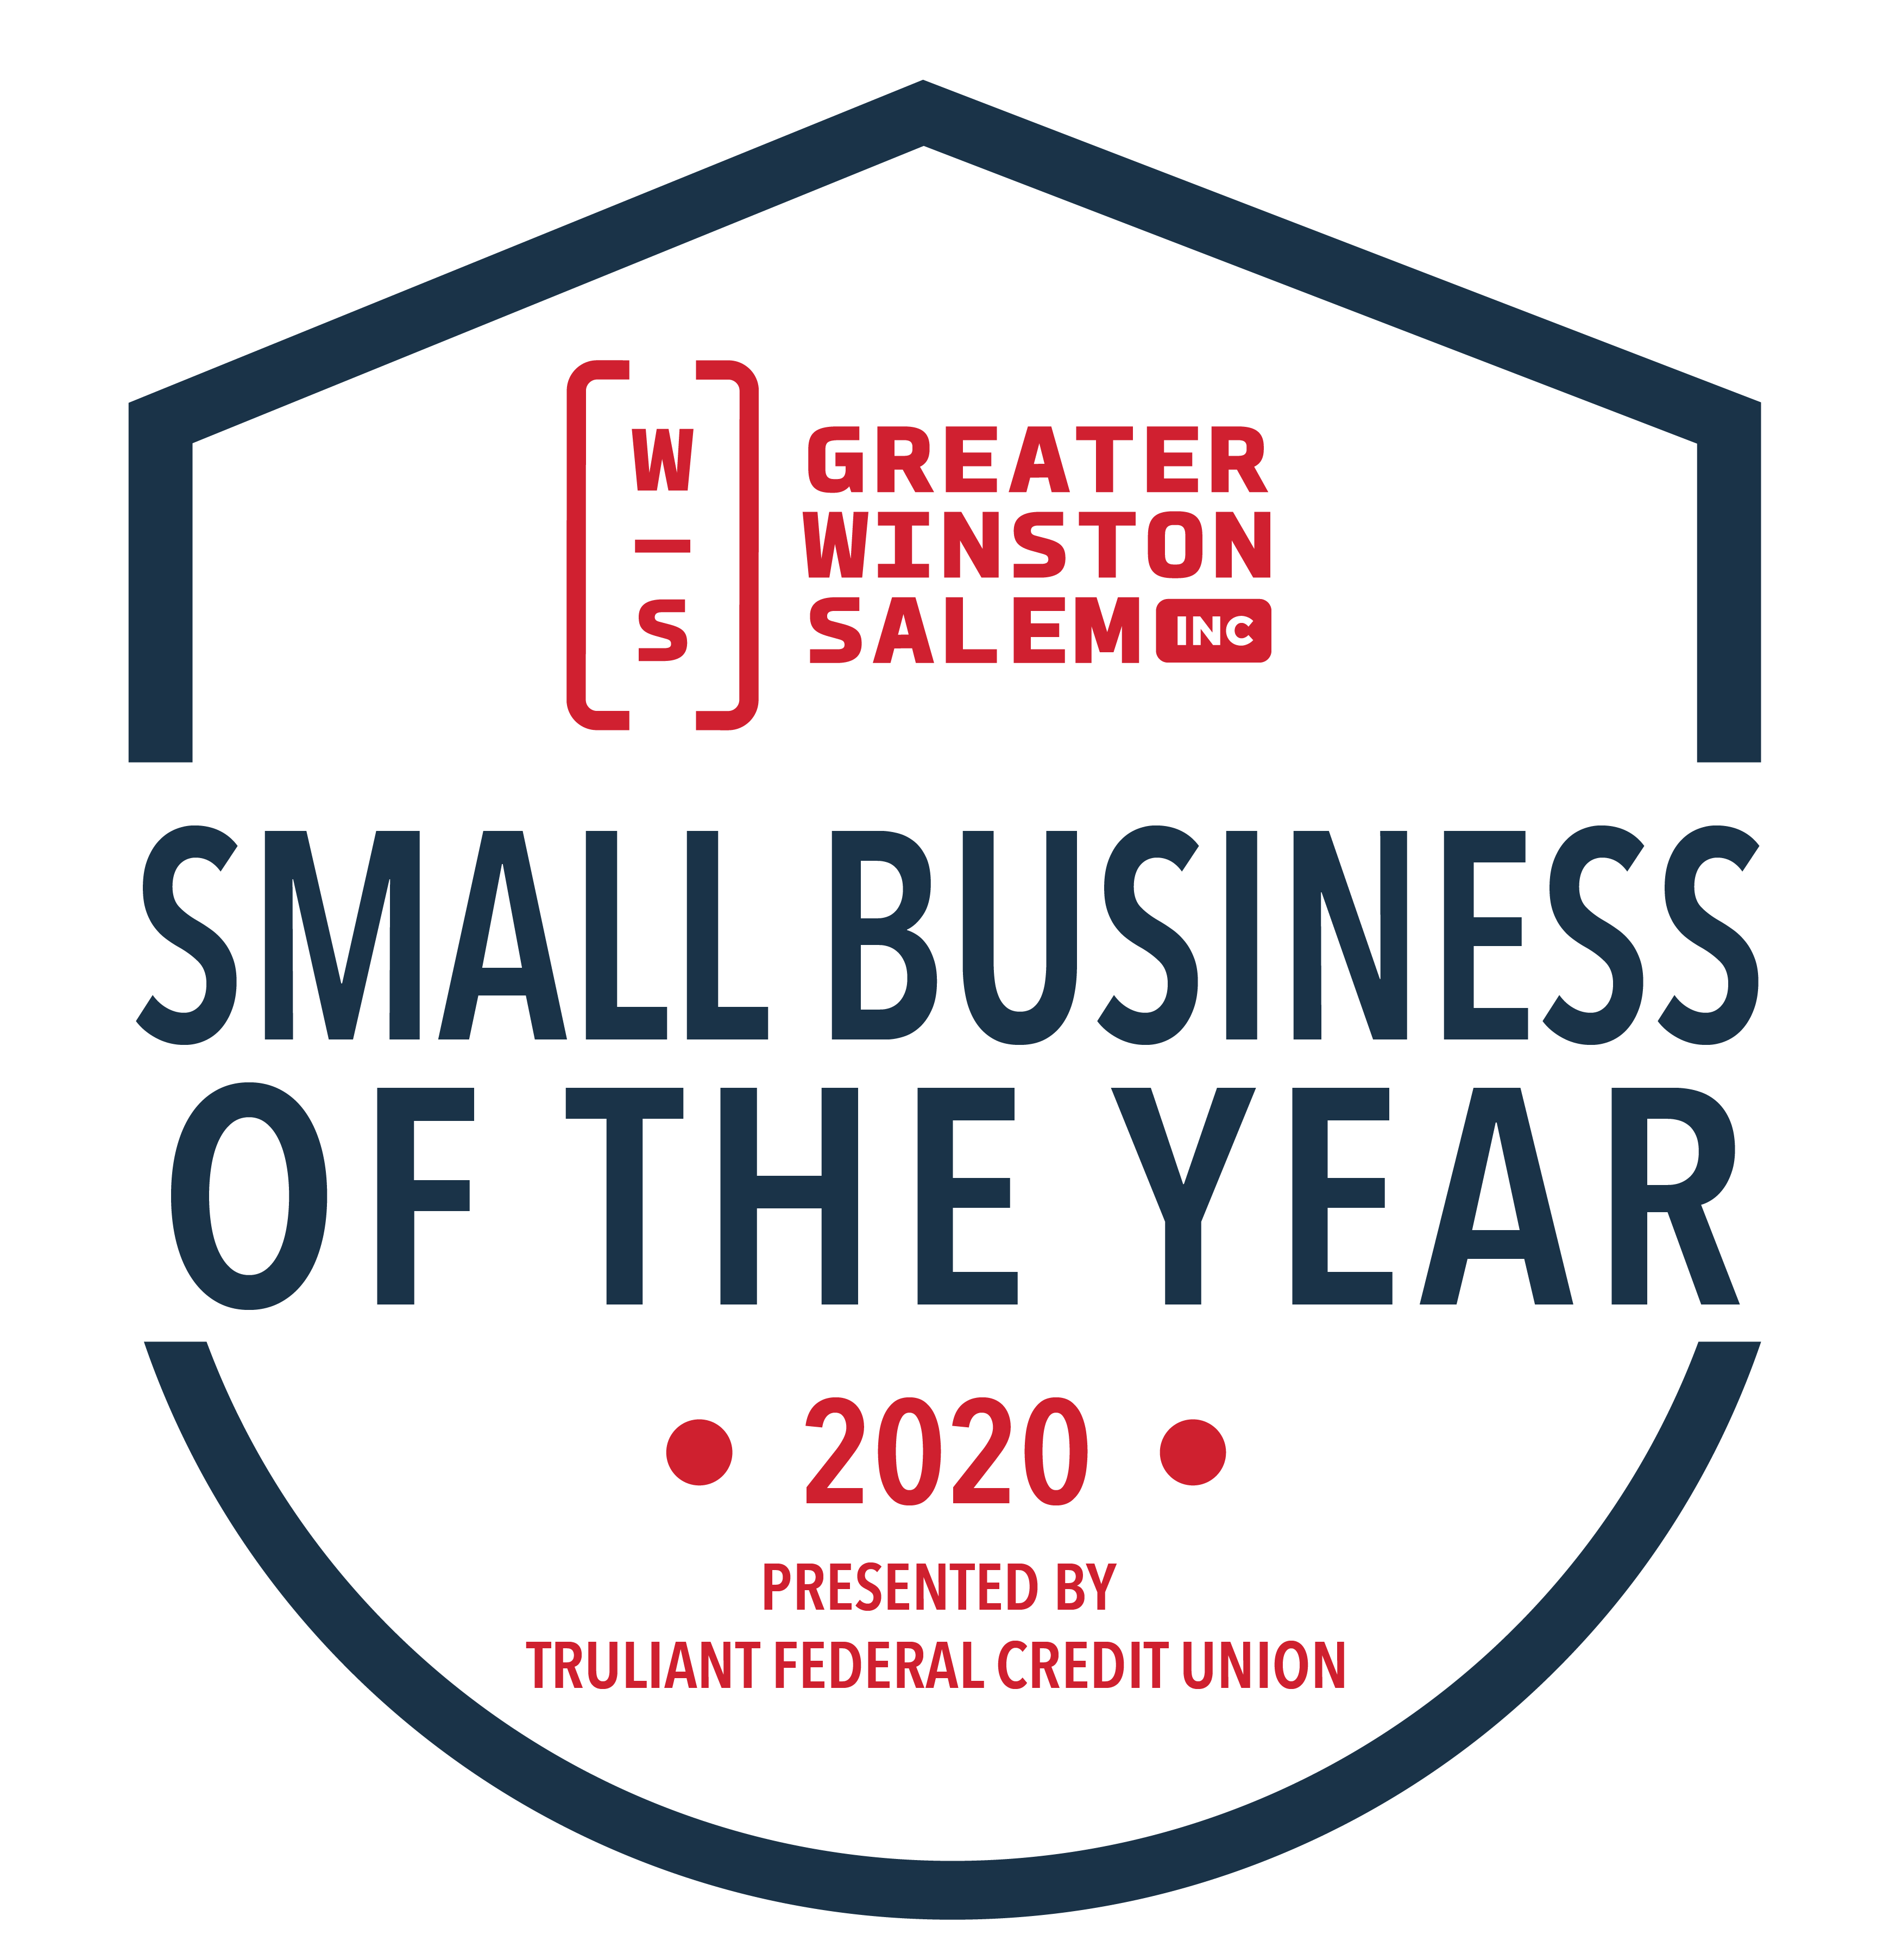 Small-Business-of-the-Year-Badge-01